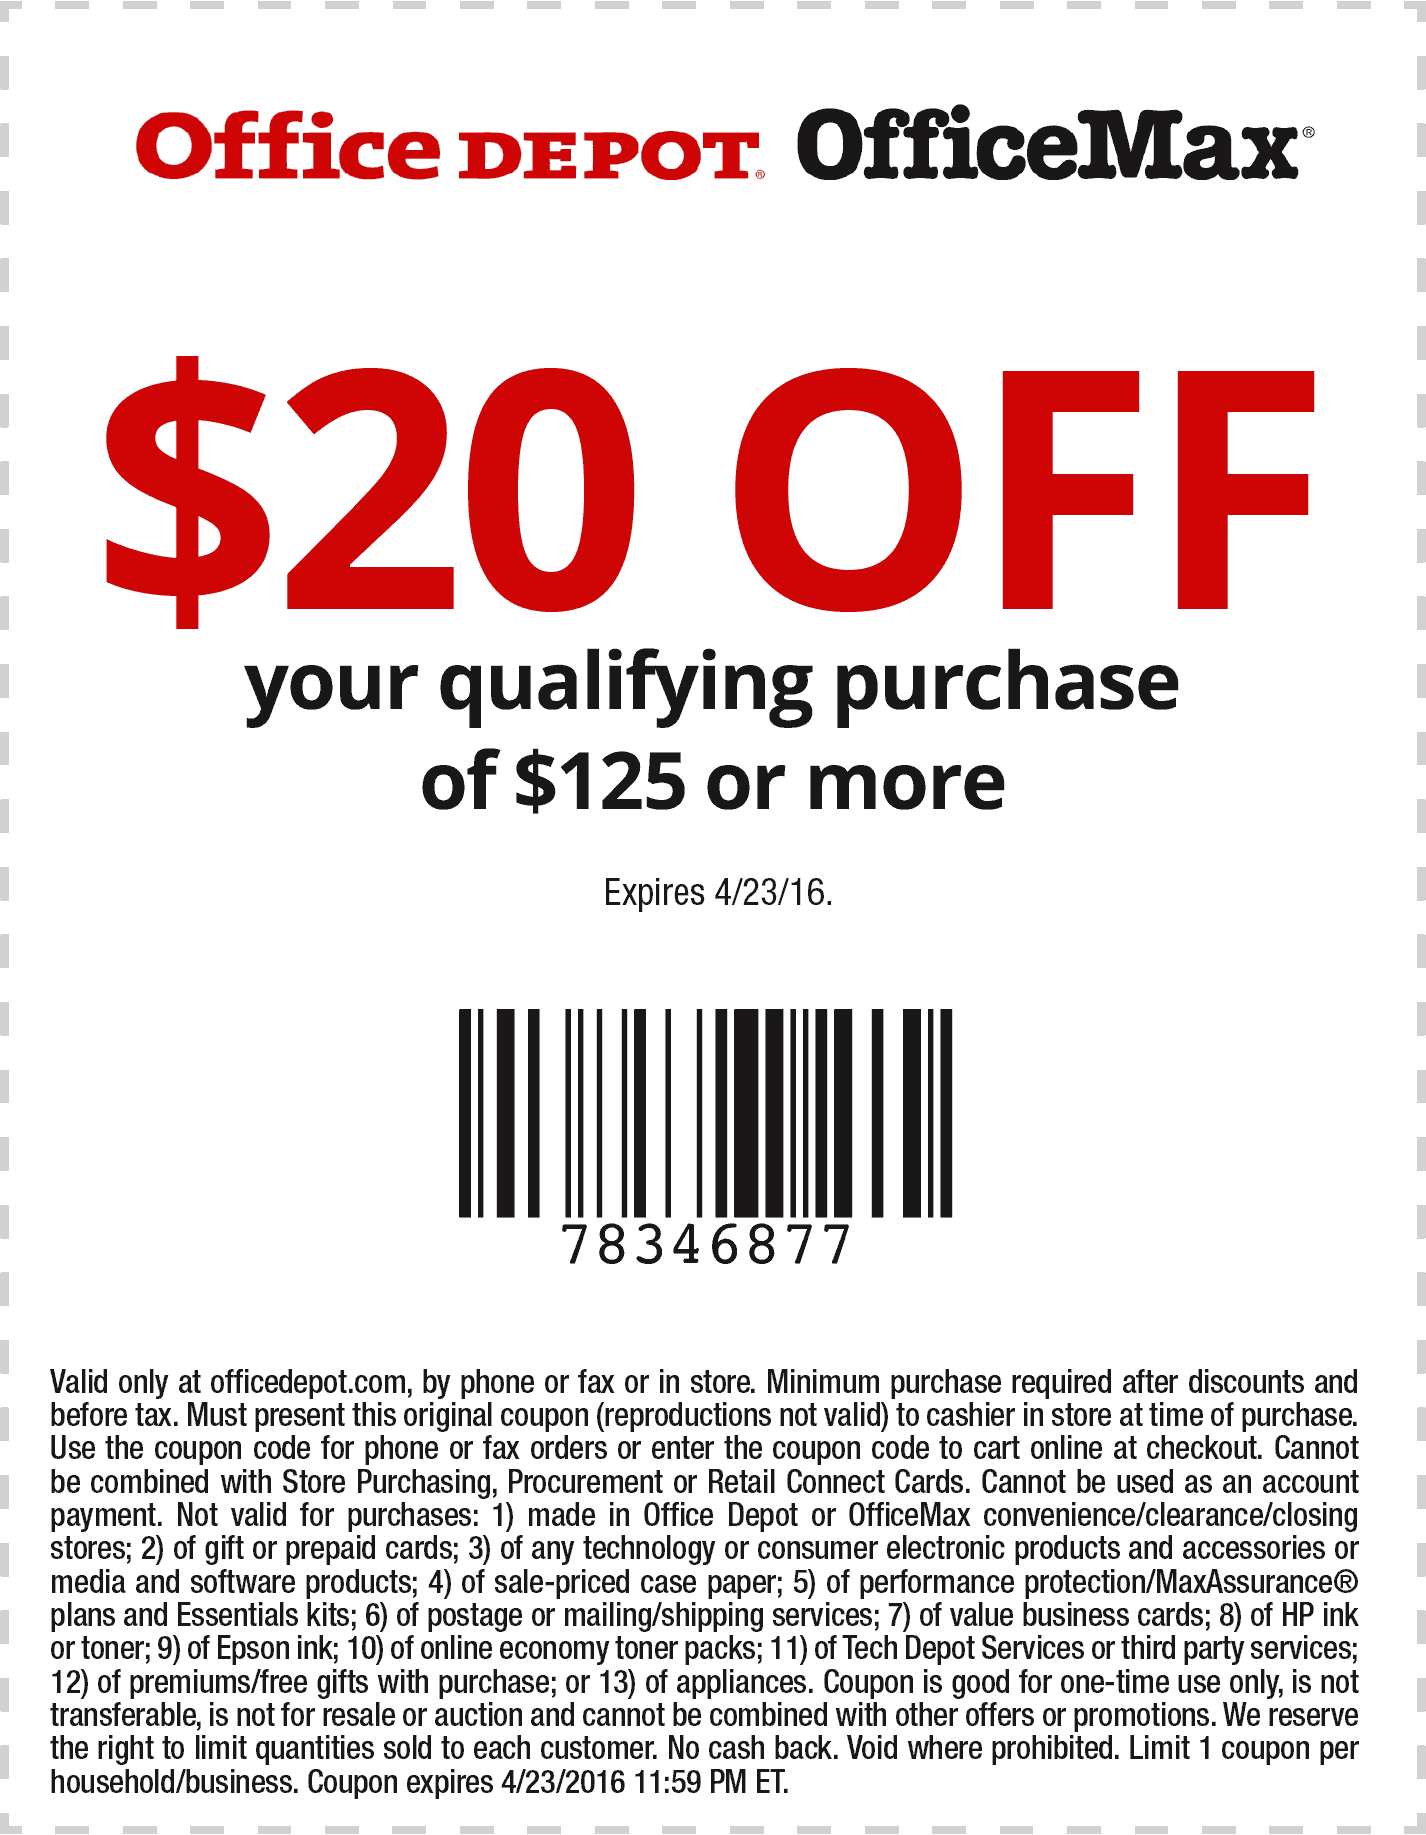 OfficeDepot.com Promo Coupon $20 off $125 at Office Depot & OfficeMax, or online via promo code 78346877